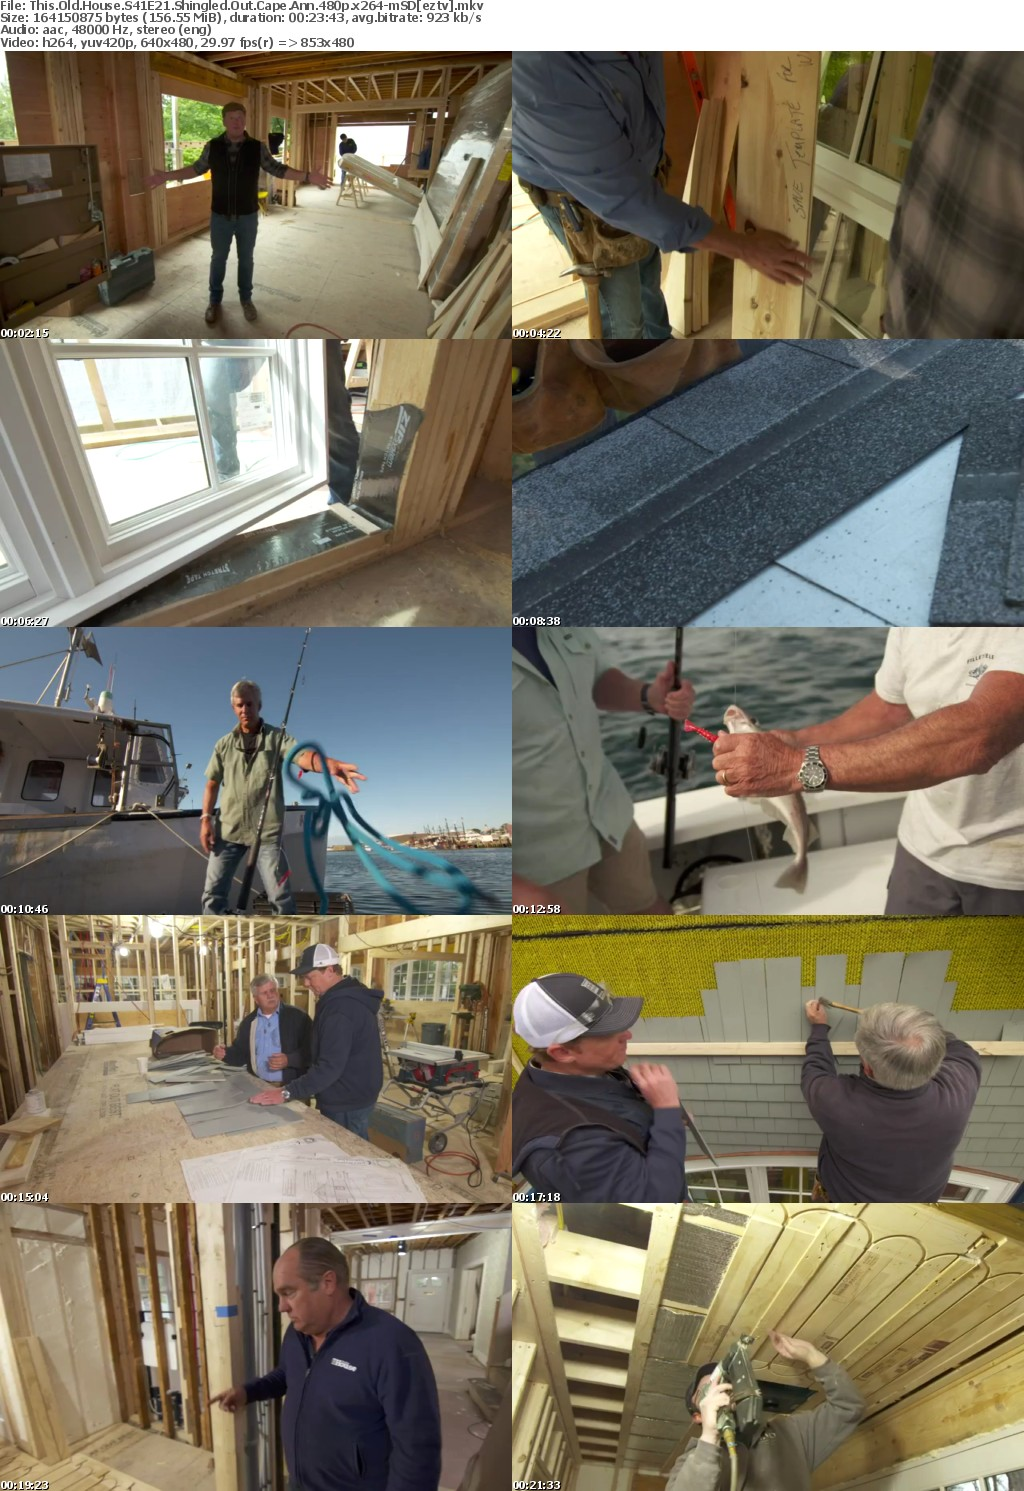 This Old House S41E21 Shingled Out Cape Ann 480p x264-mSD